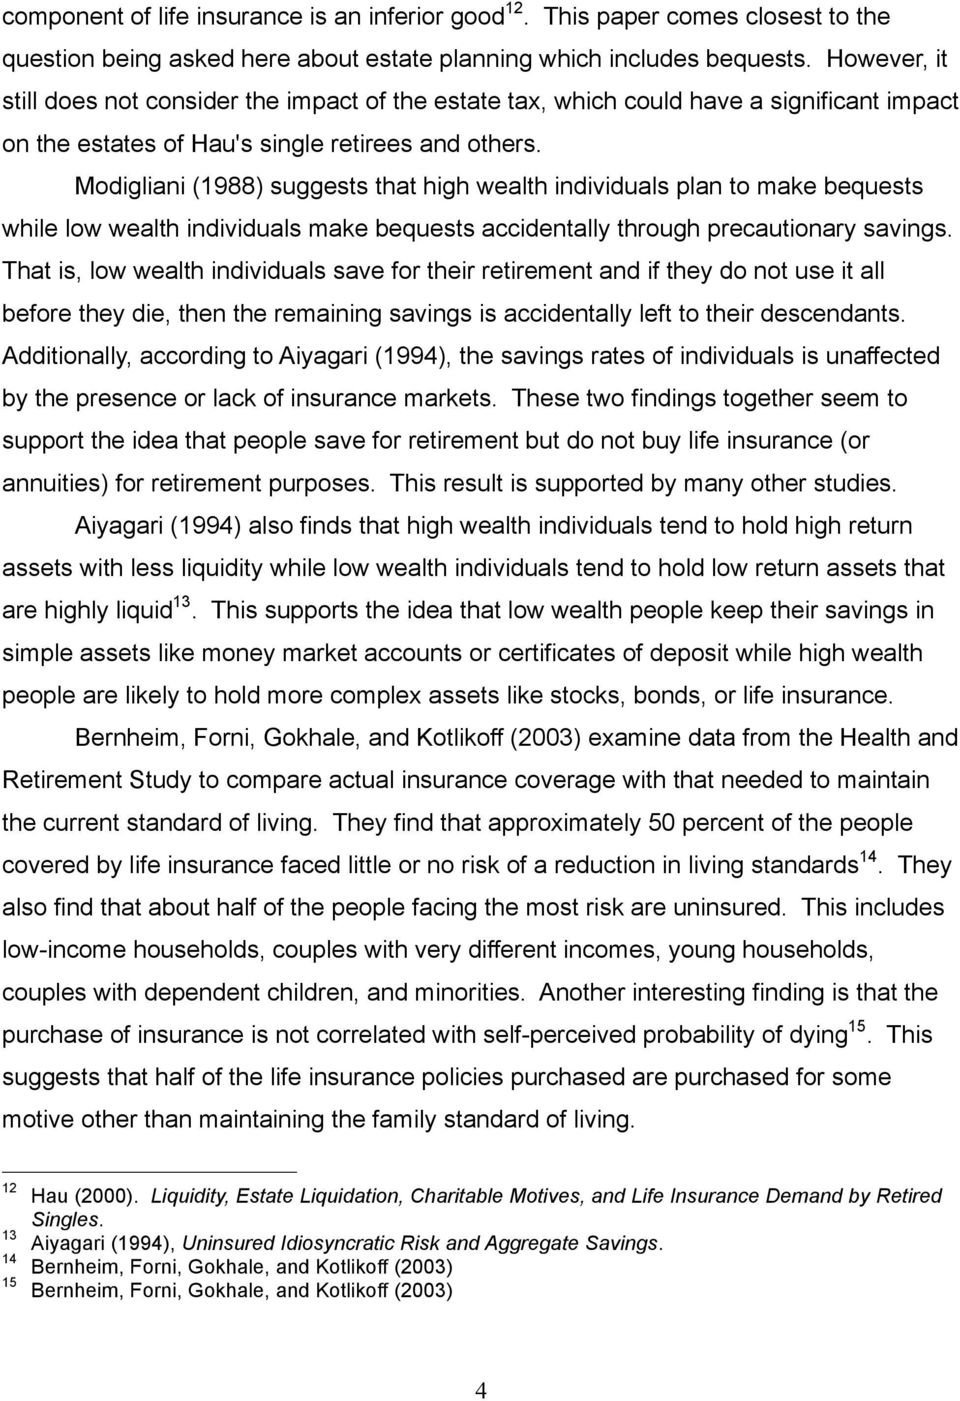 Modigliani (1988) suggests that high wealth individuals plan to make bequests while low wealth individuals make bequests accidentally through precautionary savings.